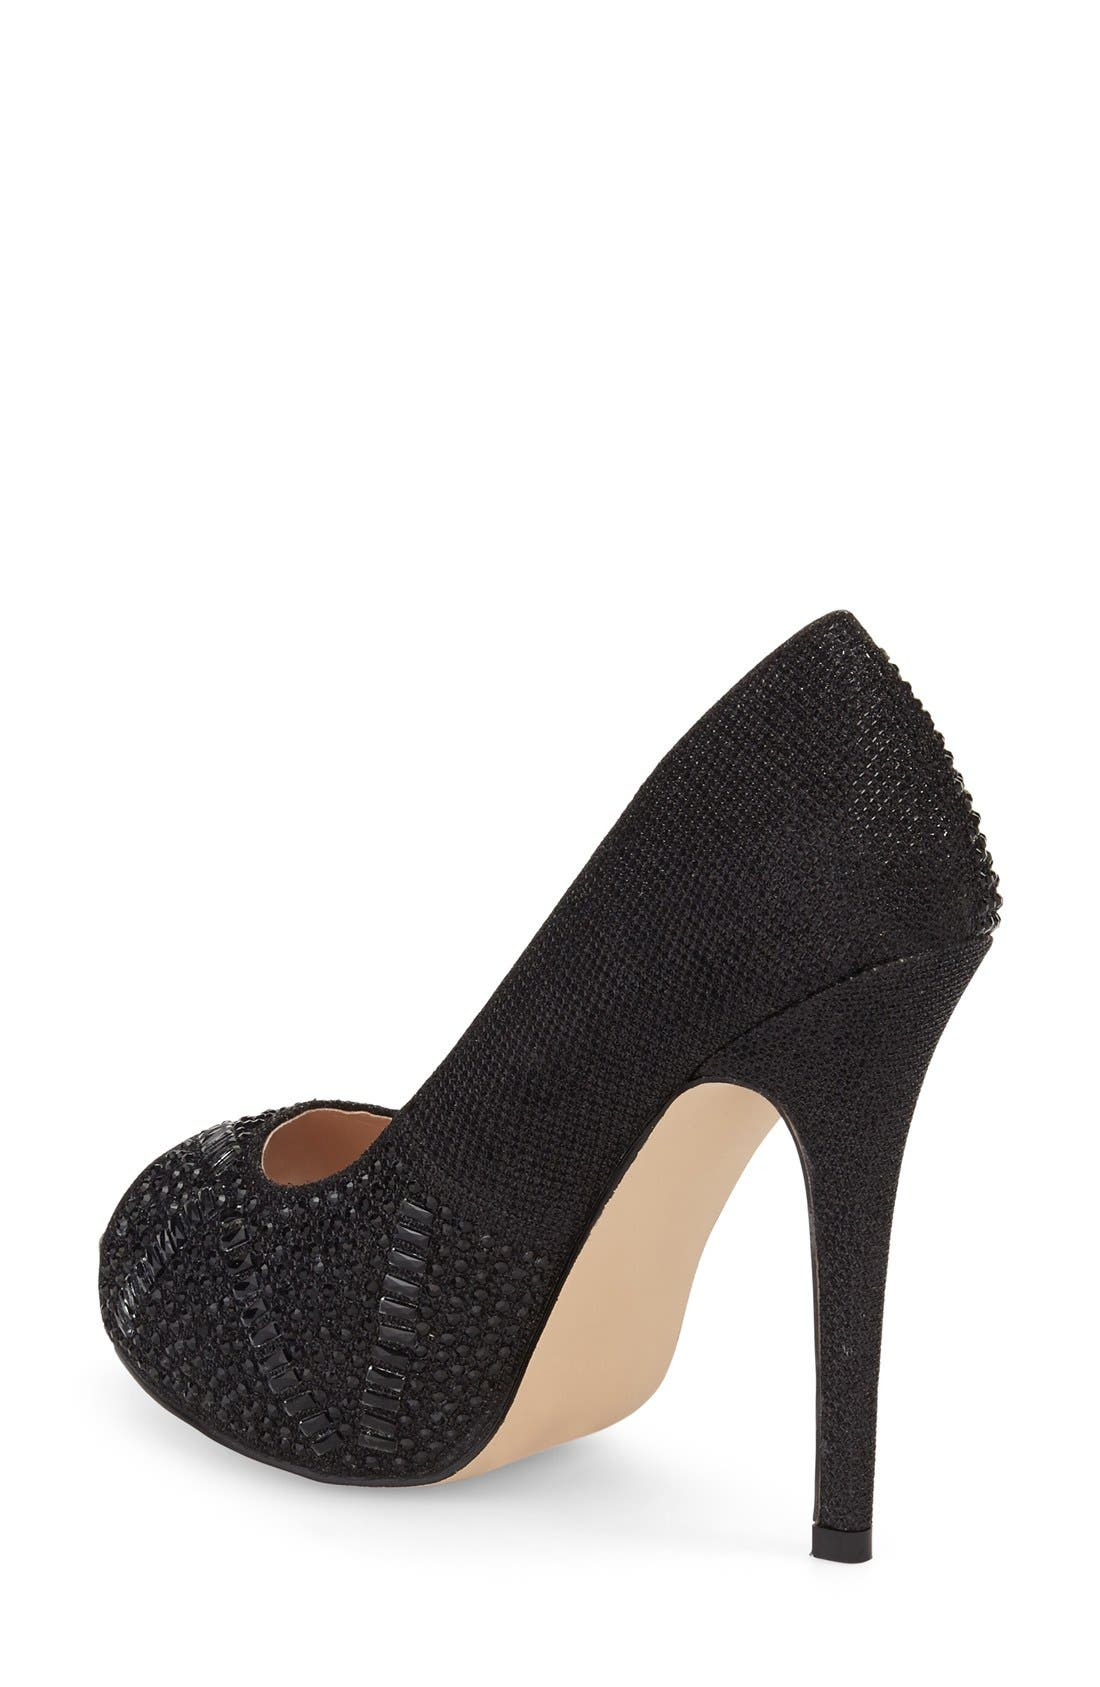 Elissa - 3 Peep Toe Pump,                             Alternate thumbnail 2, color,                             Black